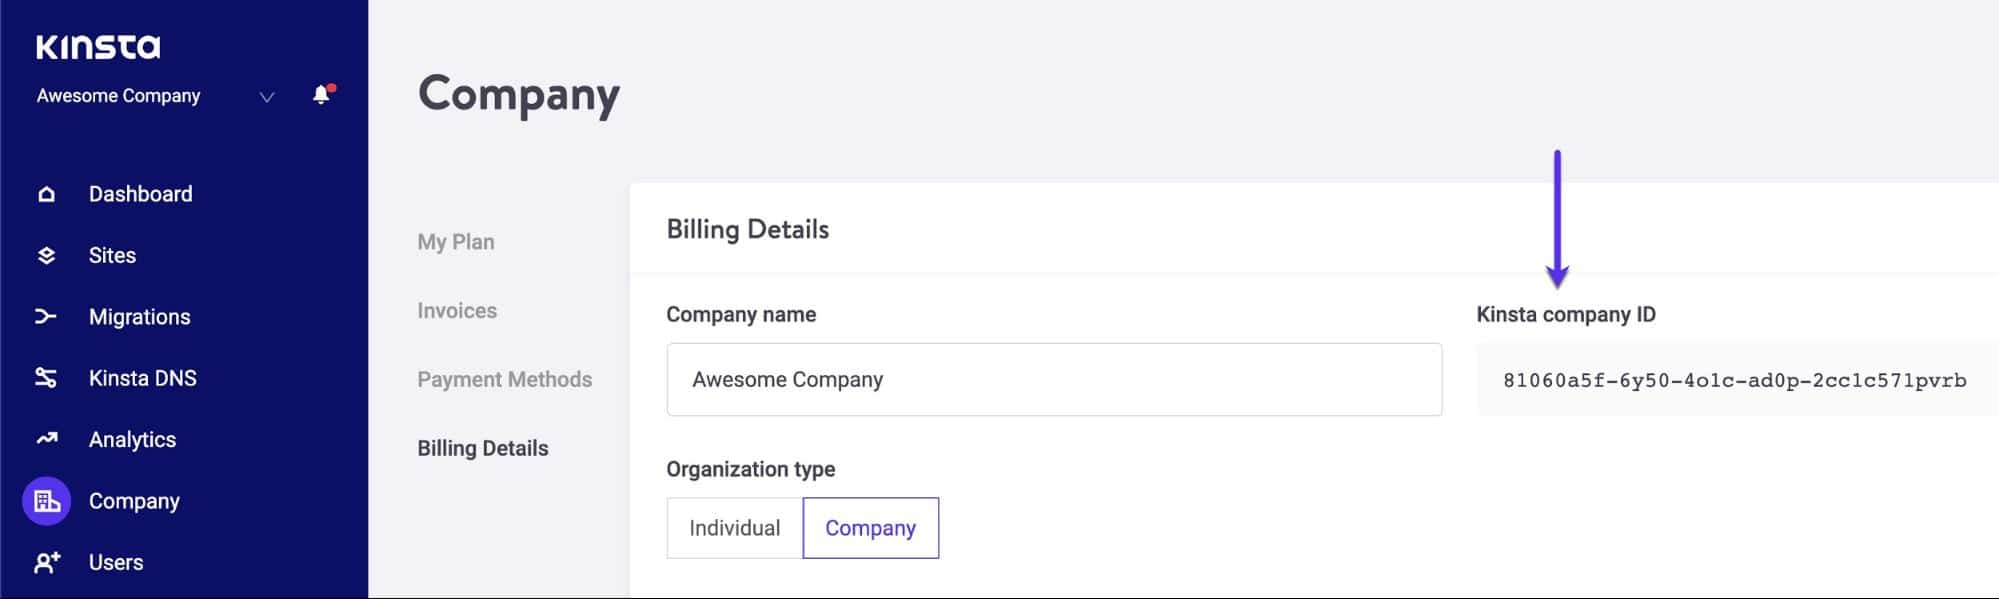 Kinsta Company ID in the MyKinsta dashboard.